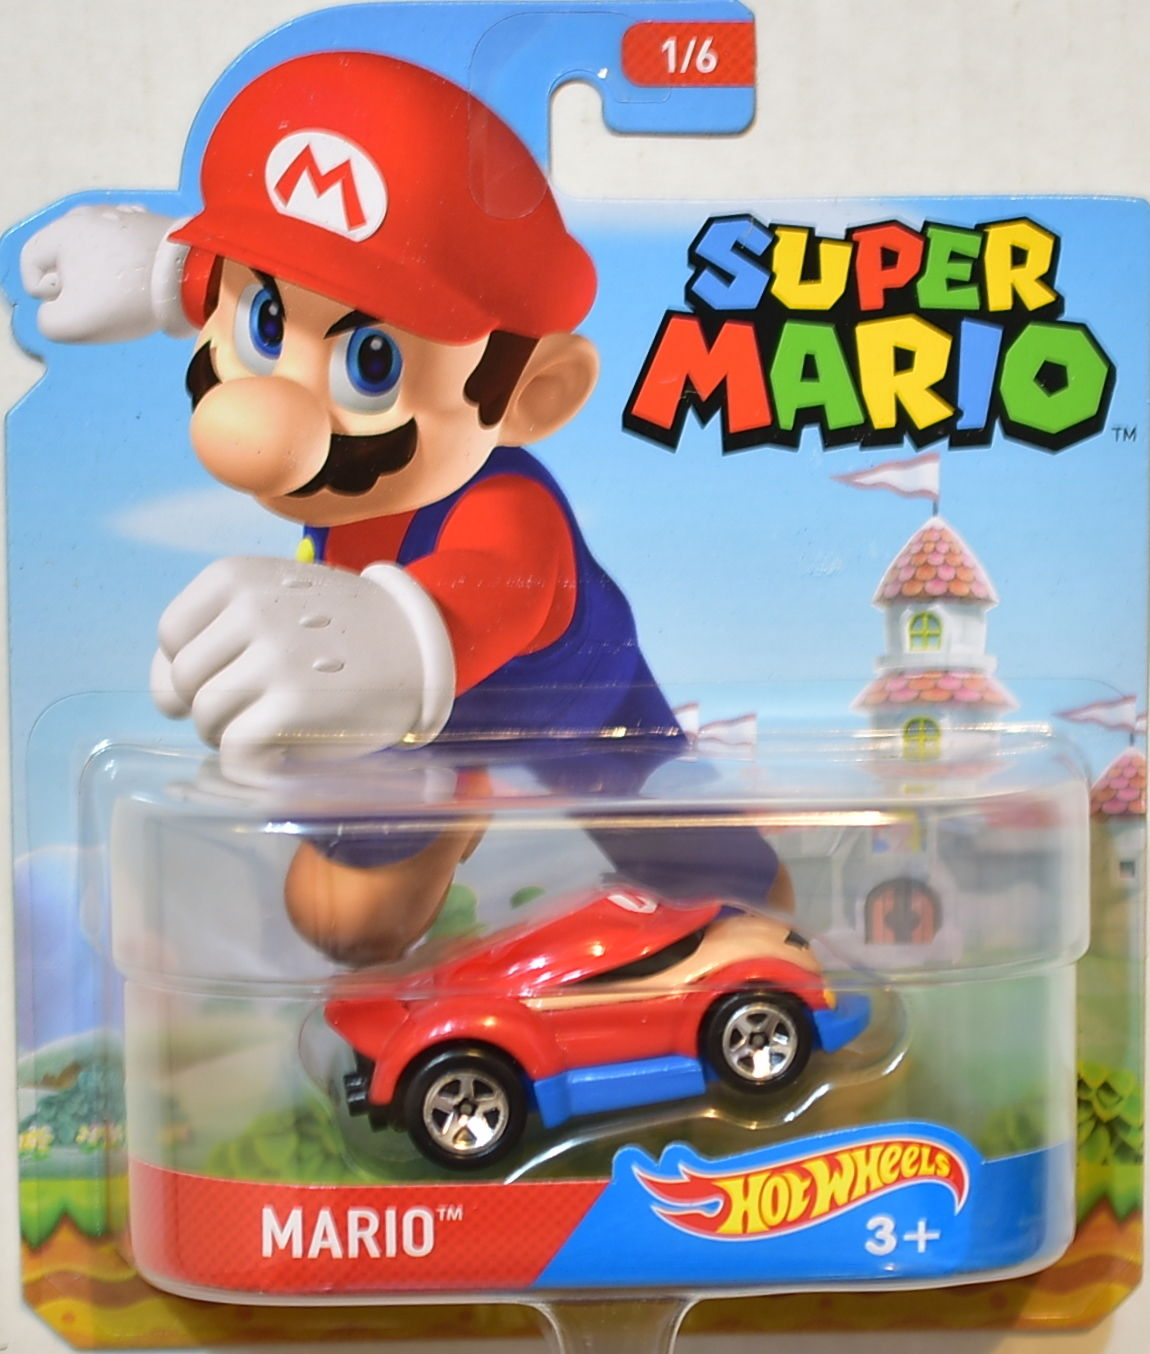 HOT WHEELS SUPER MARIO #1/6 MARIO